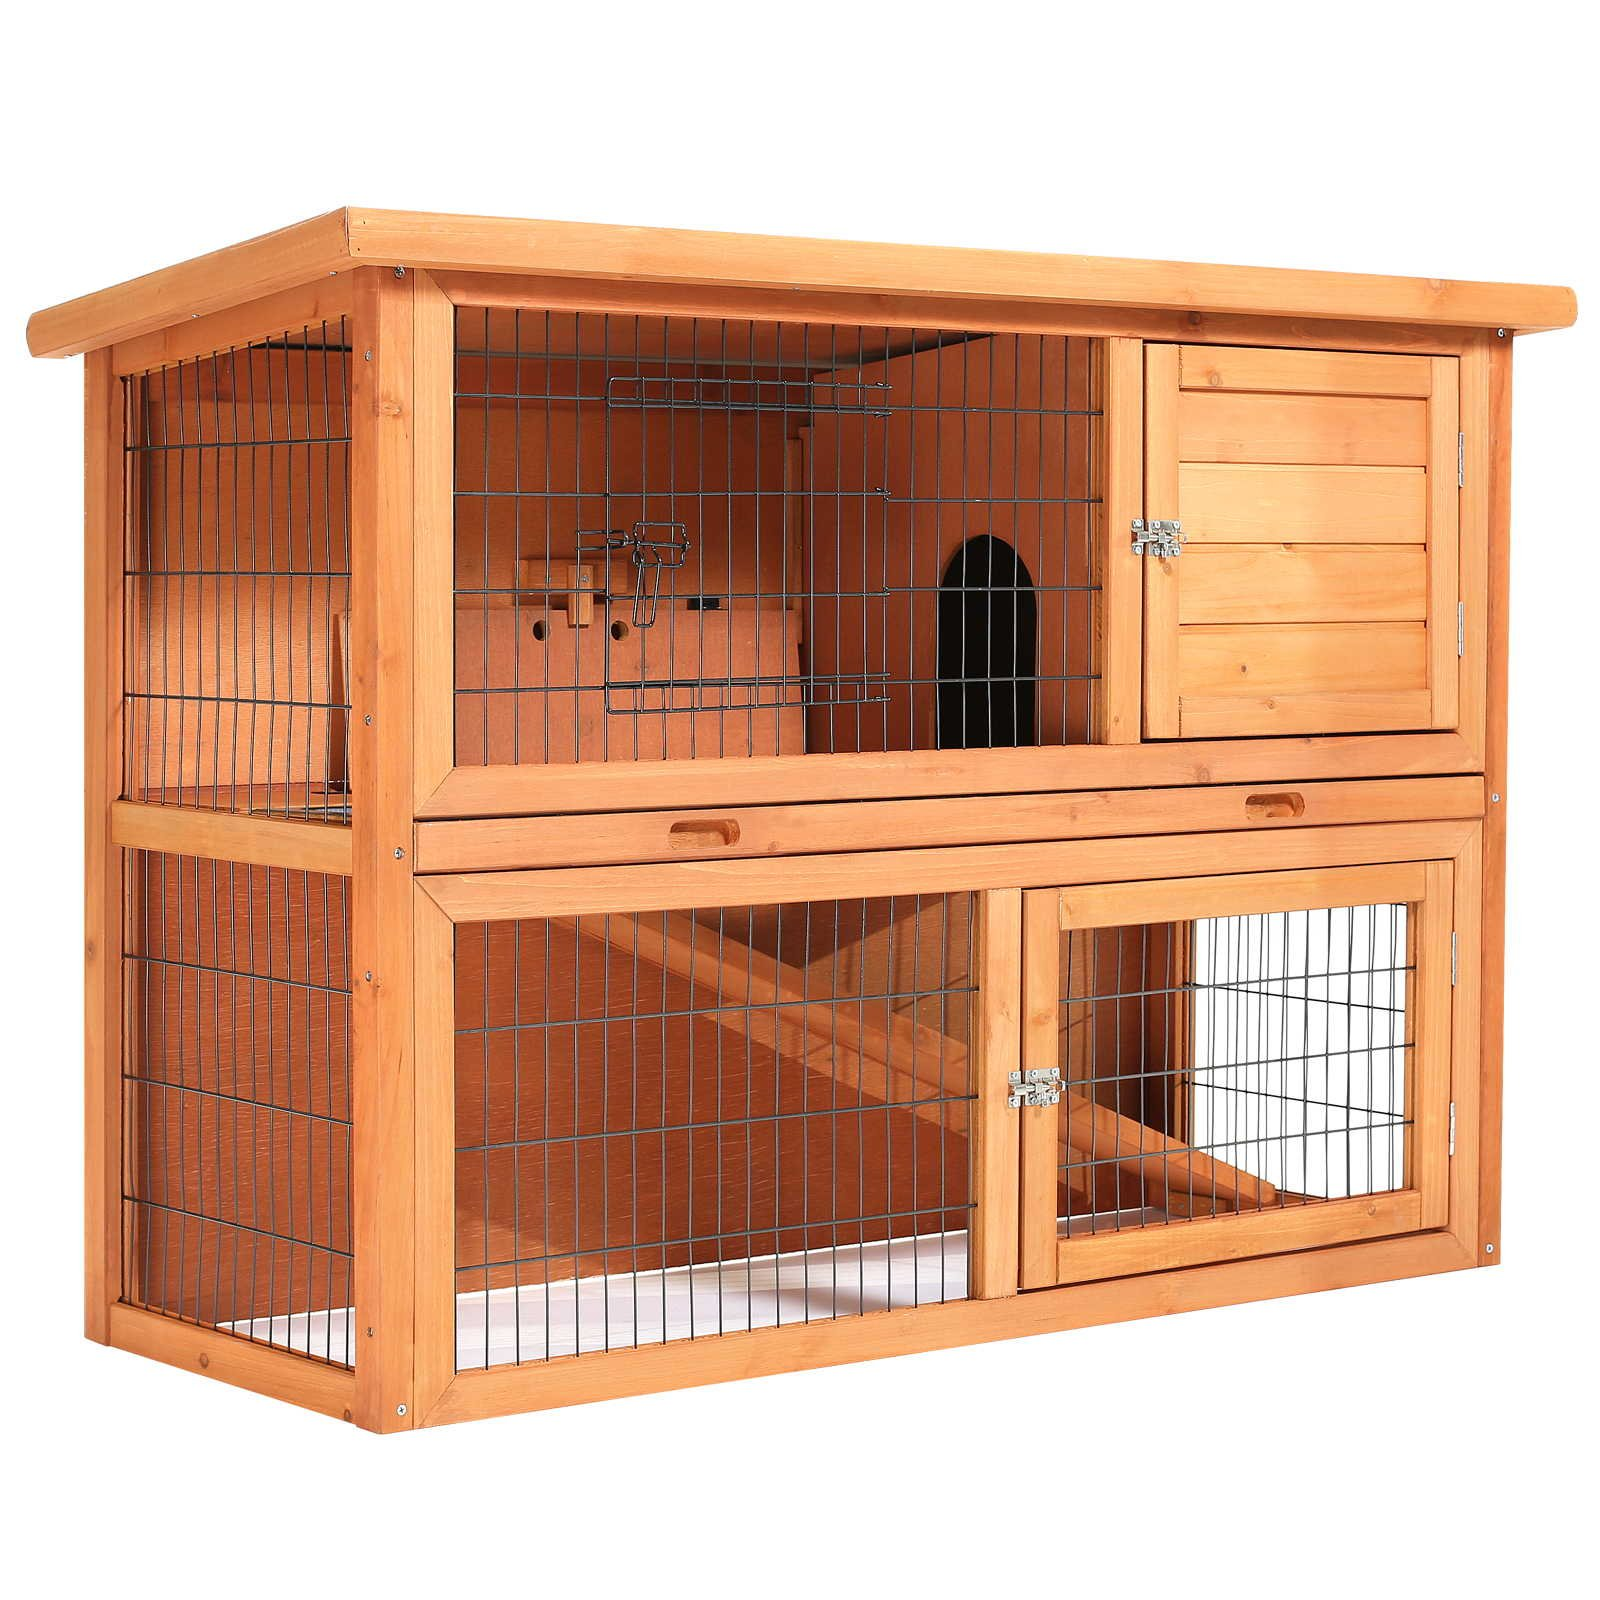 SmithBuilt 48'' Rabbit Hutch - Two Story Wood Bunny Cage